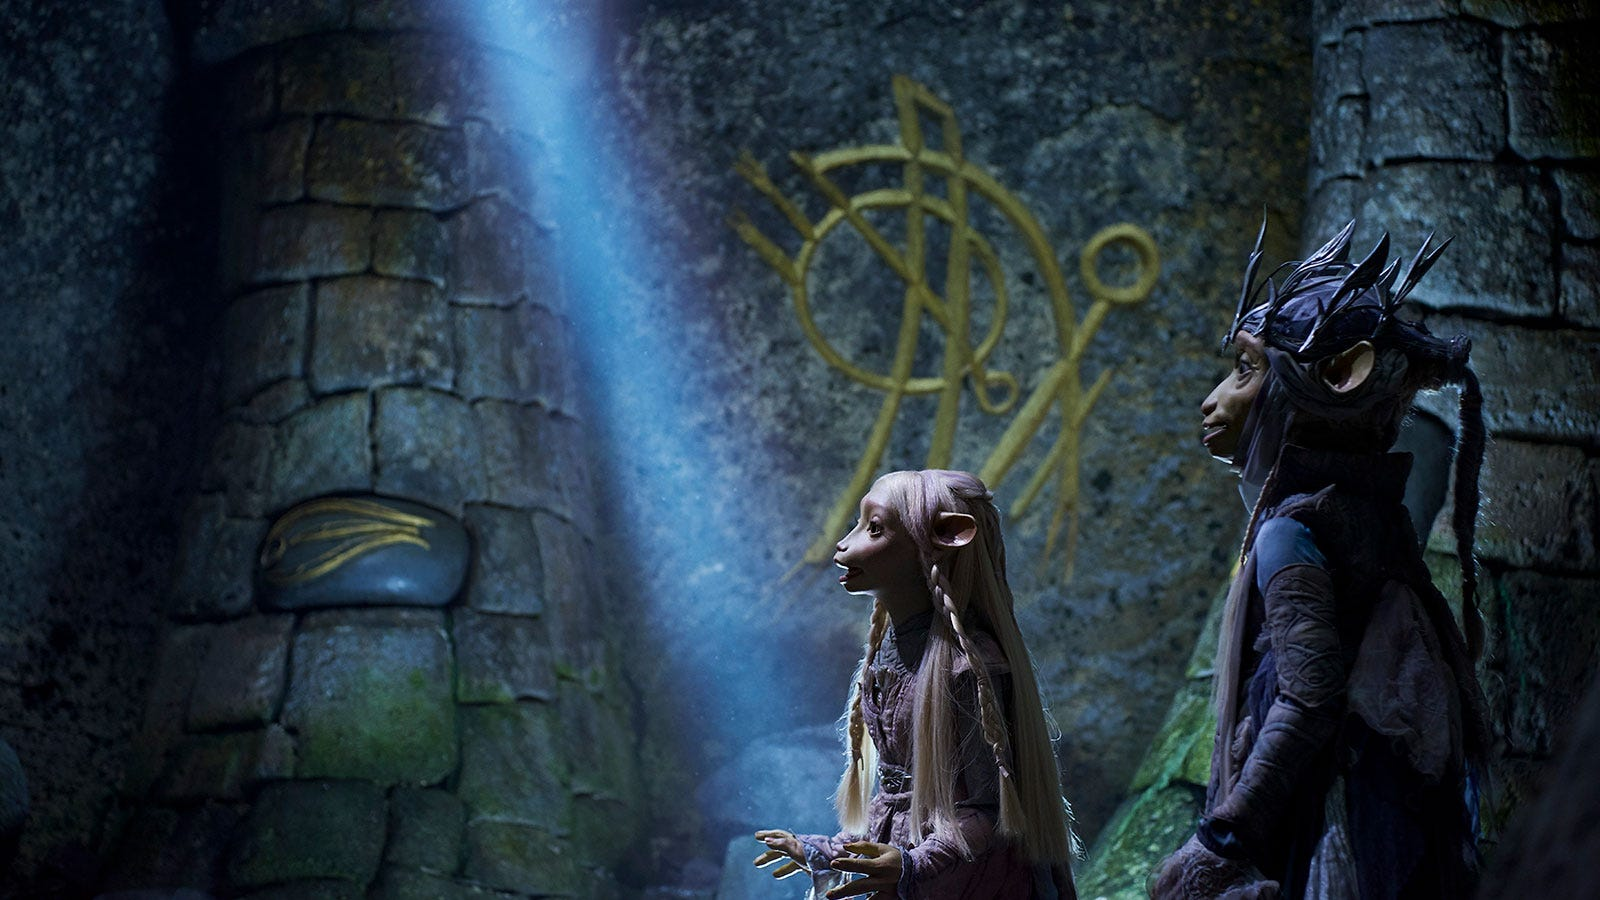 The Dark Crystal: Age of Resistance Is the Strangest of Things: A Riveting Long-Form Puppet Show